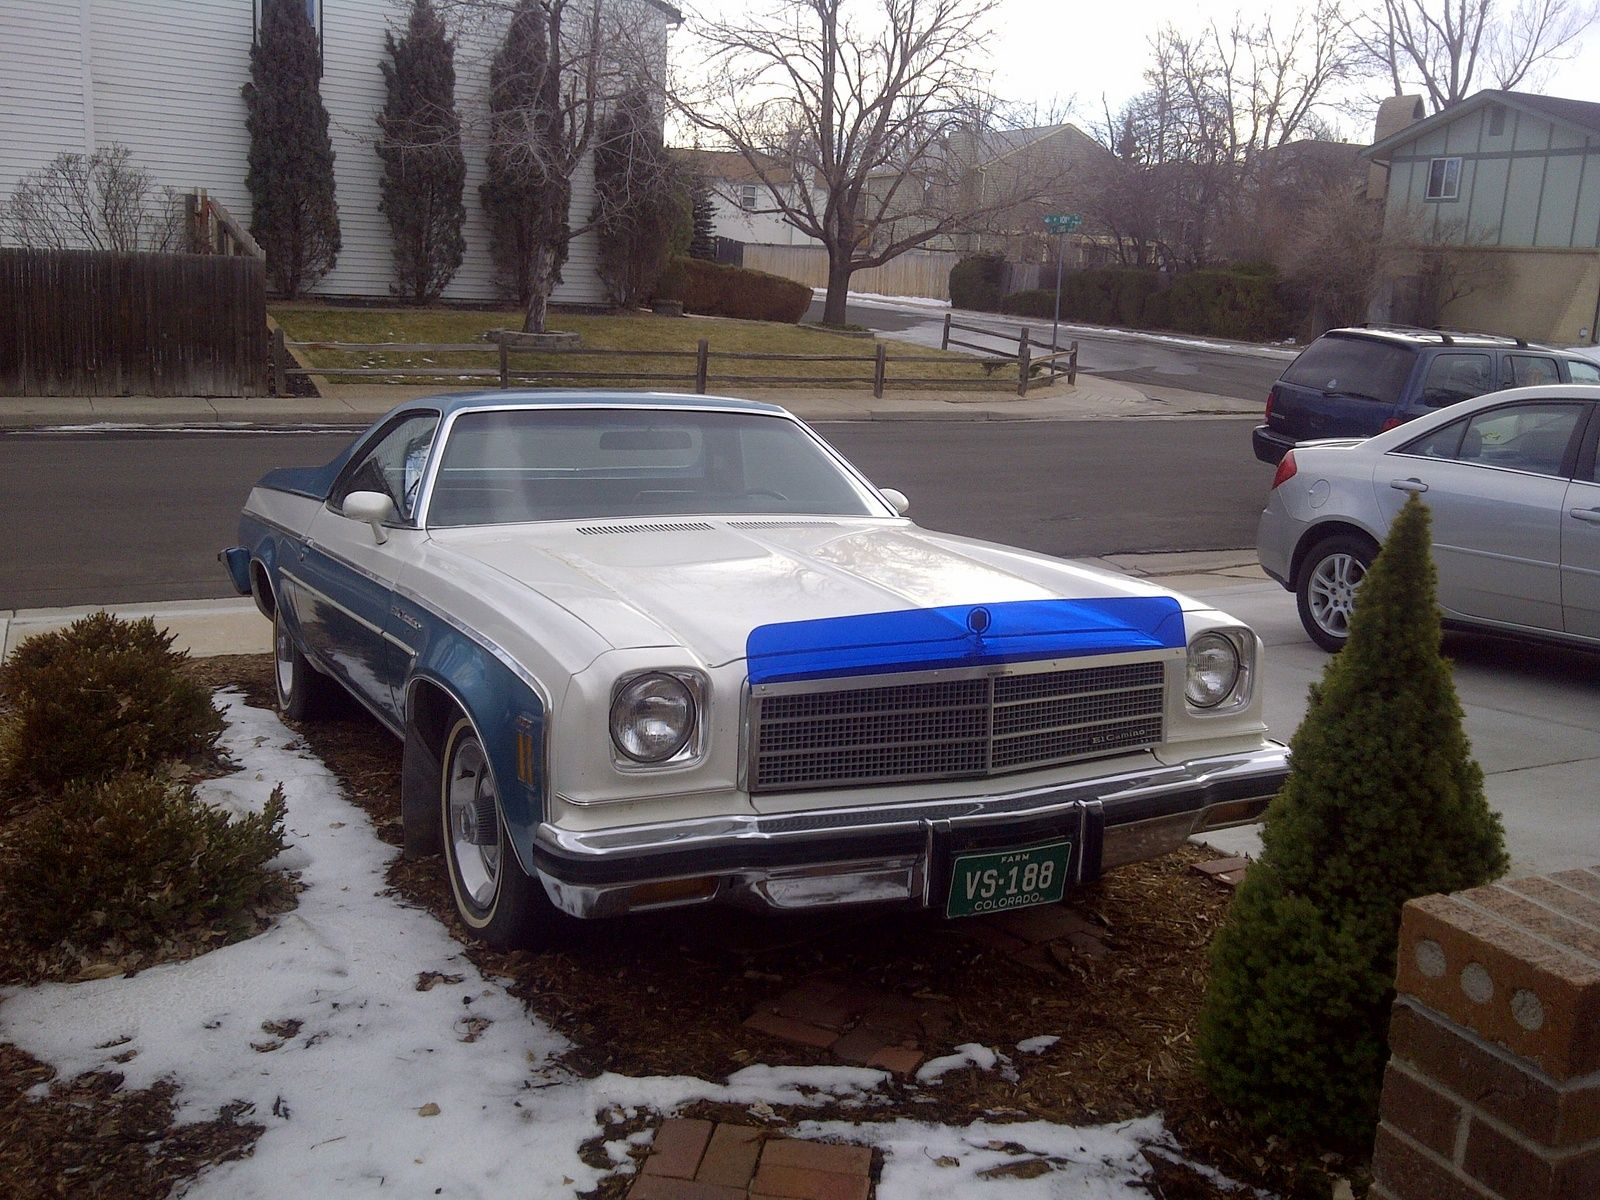 small resolution of 1974 chevrolet el camino pictures see 25 pics for 1974 chevrolet el camino browse interior and exterior photos for 1974 chevrolet el camino